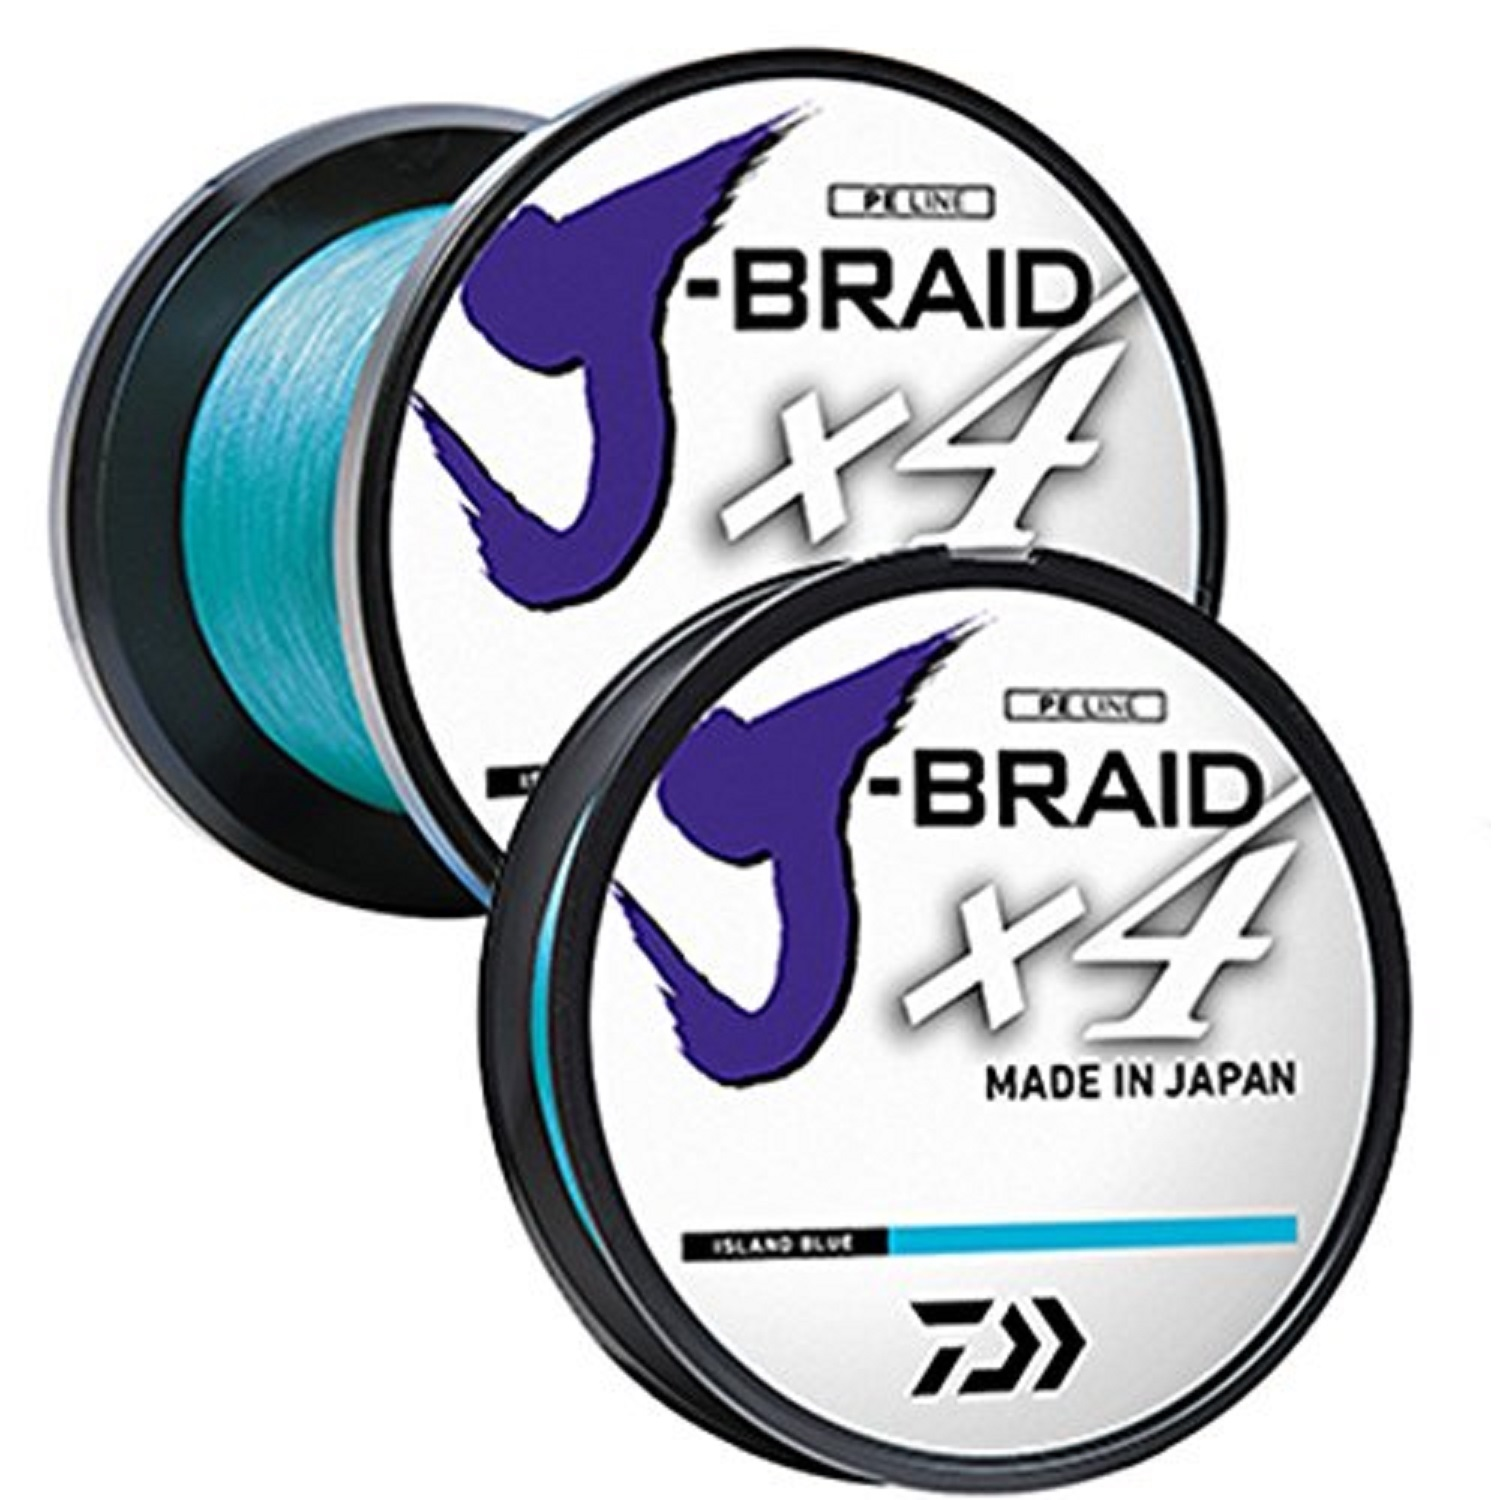 Daiwa J-Braid X4 300 Yard Spool 50LB Test, Dark Green